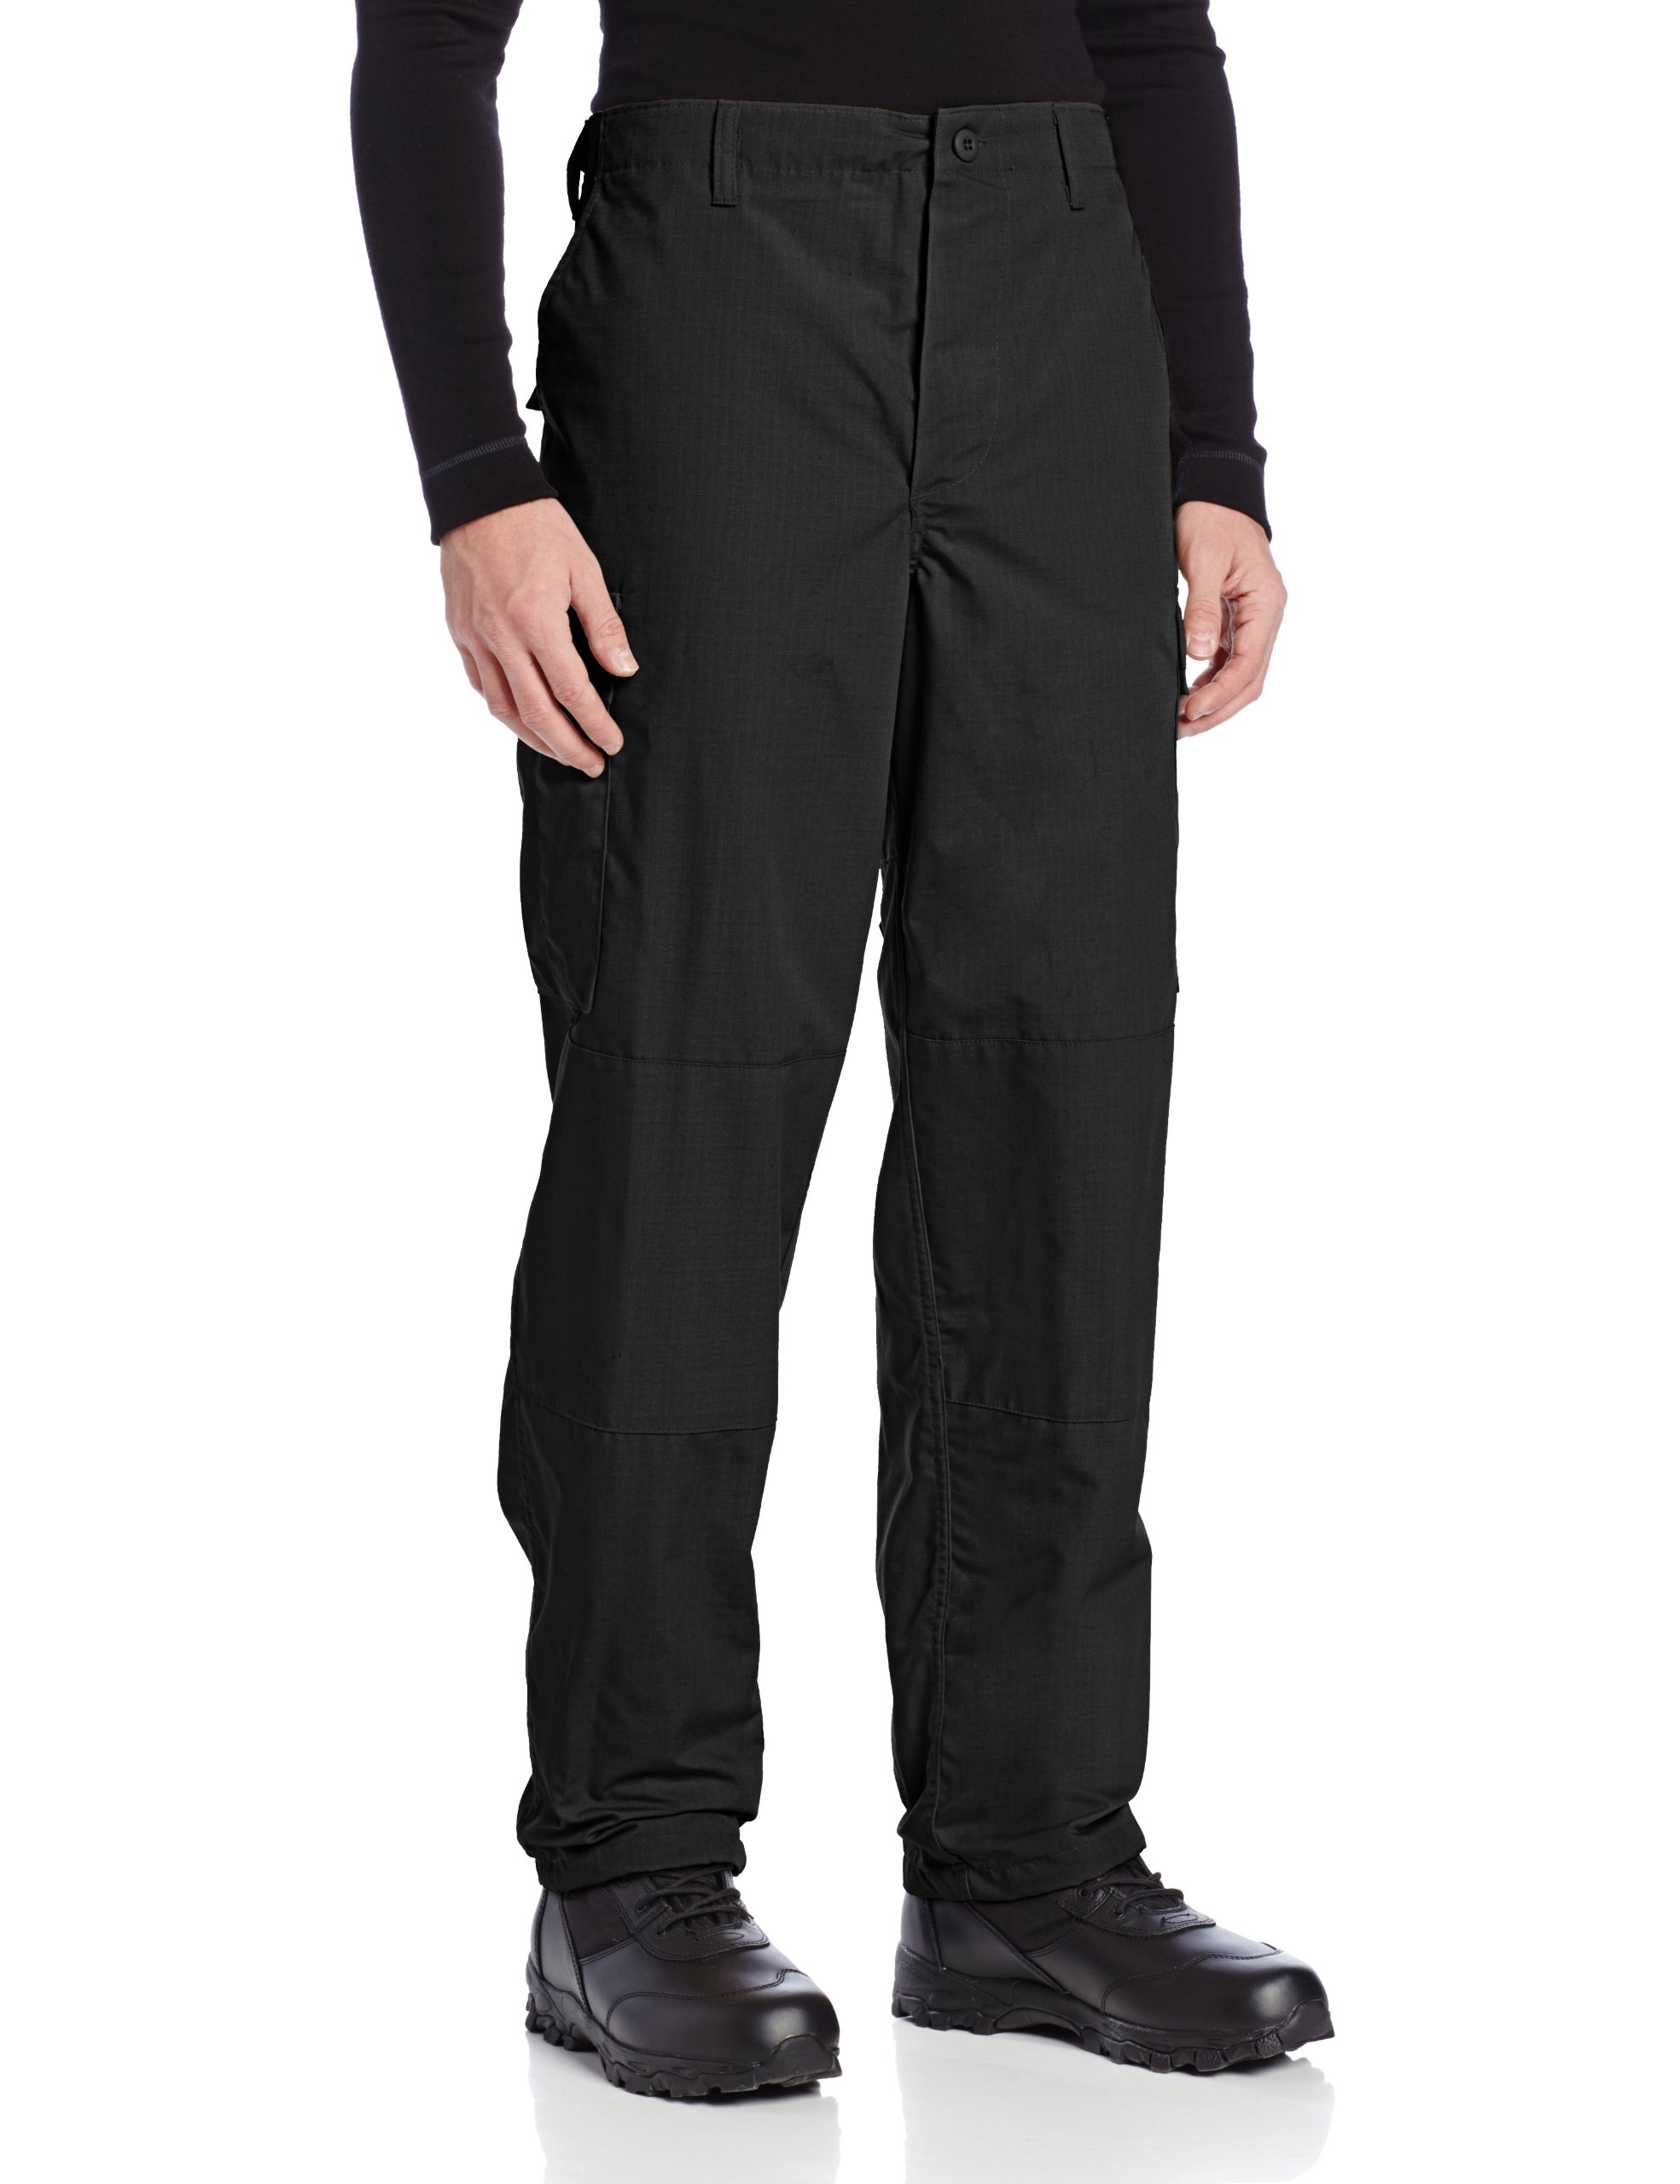 TRU-SPEC Men's Polyester Cotton Rip Stop BDU Pant, Black, XX-Large